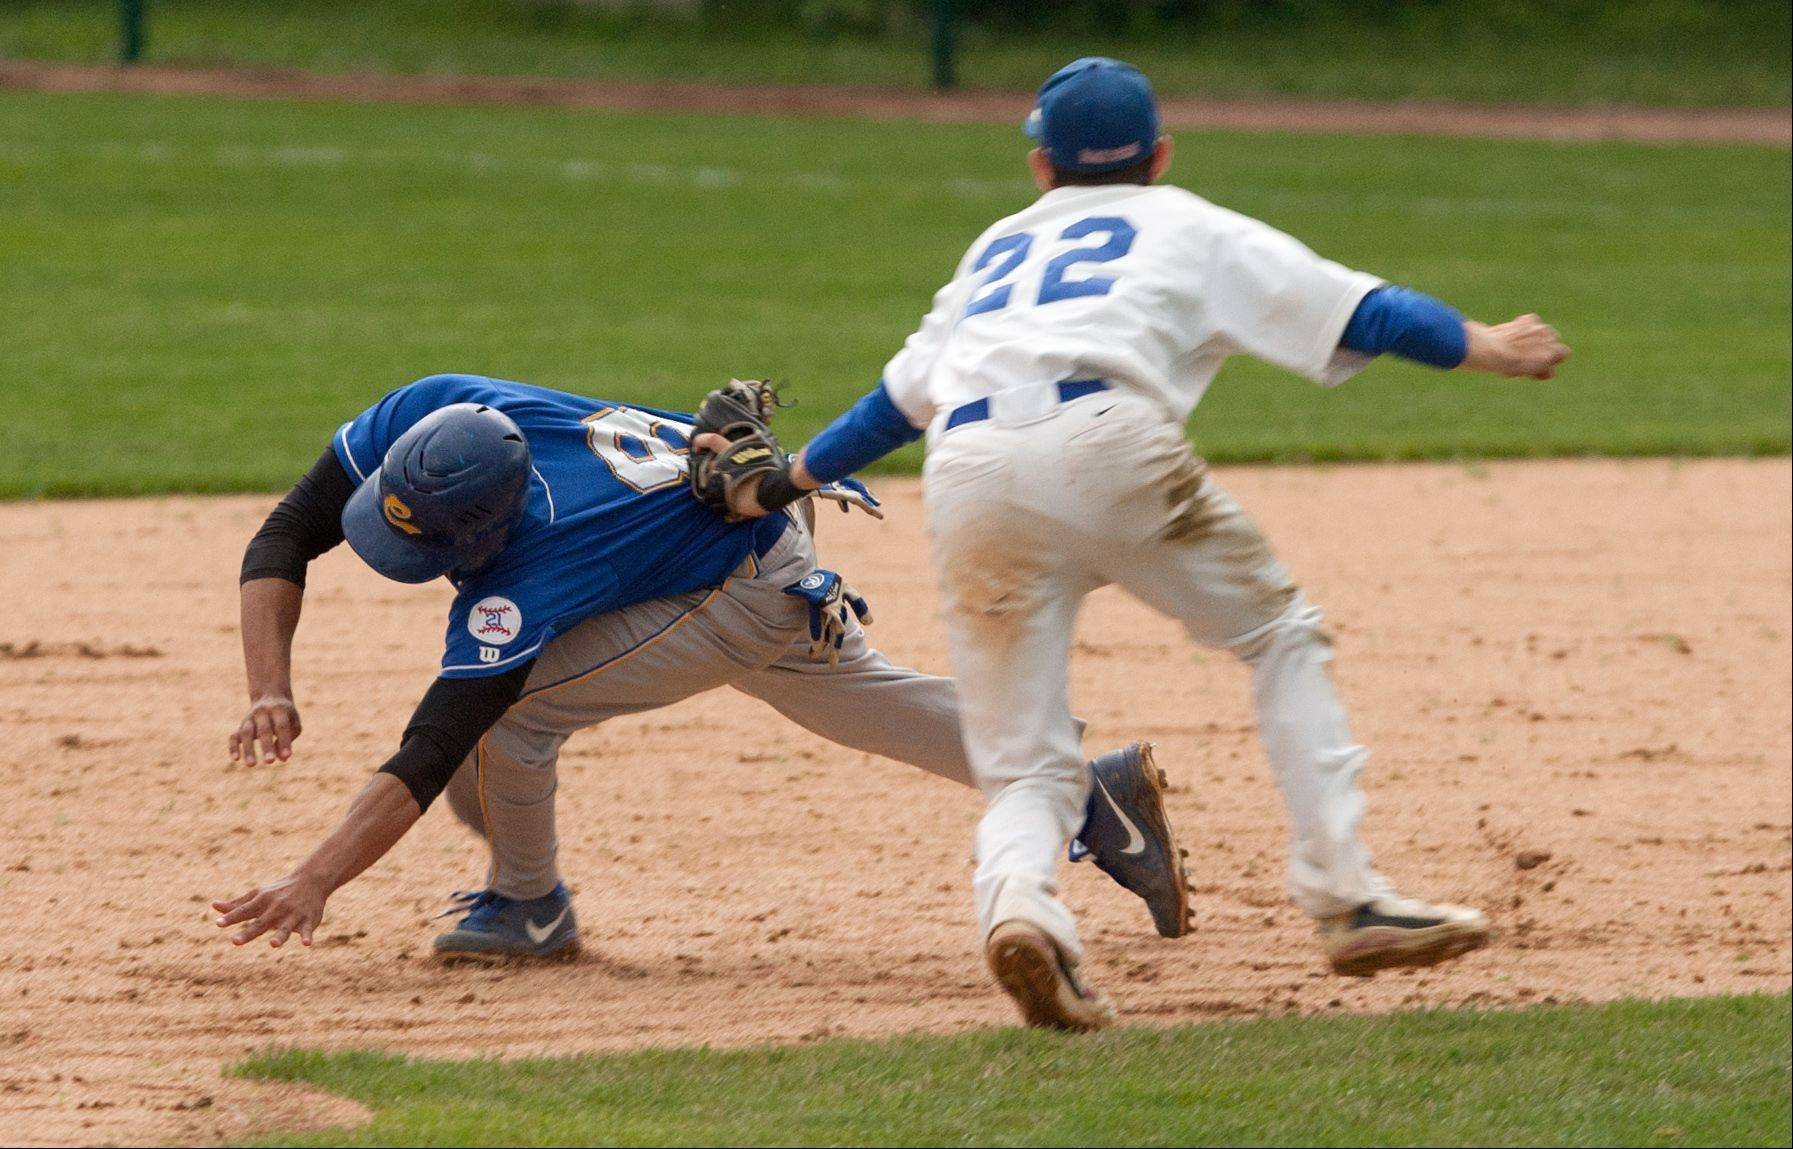 Glenbard South's Carl Sanders, right, applies the tag on Clemente's Jerimiah Figueroa, who was picked off first base during the Nazareth Class 4A sectional semifinals in LaGrange Park.